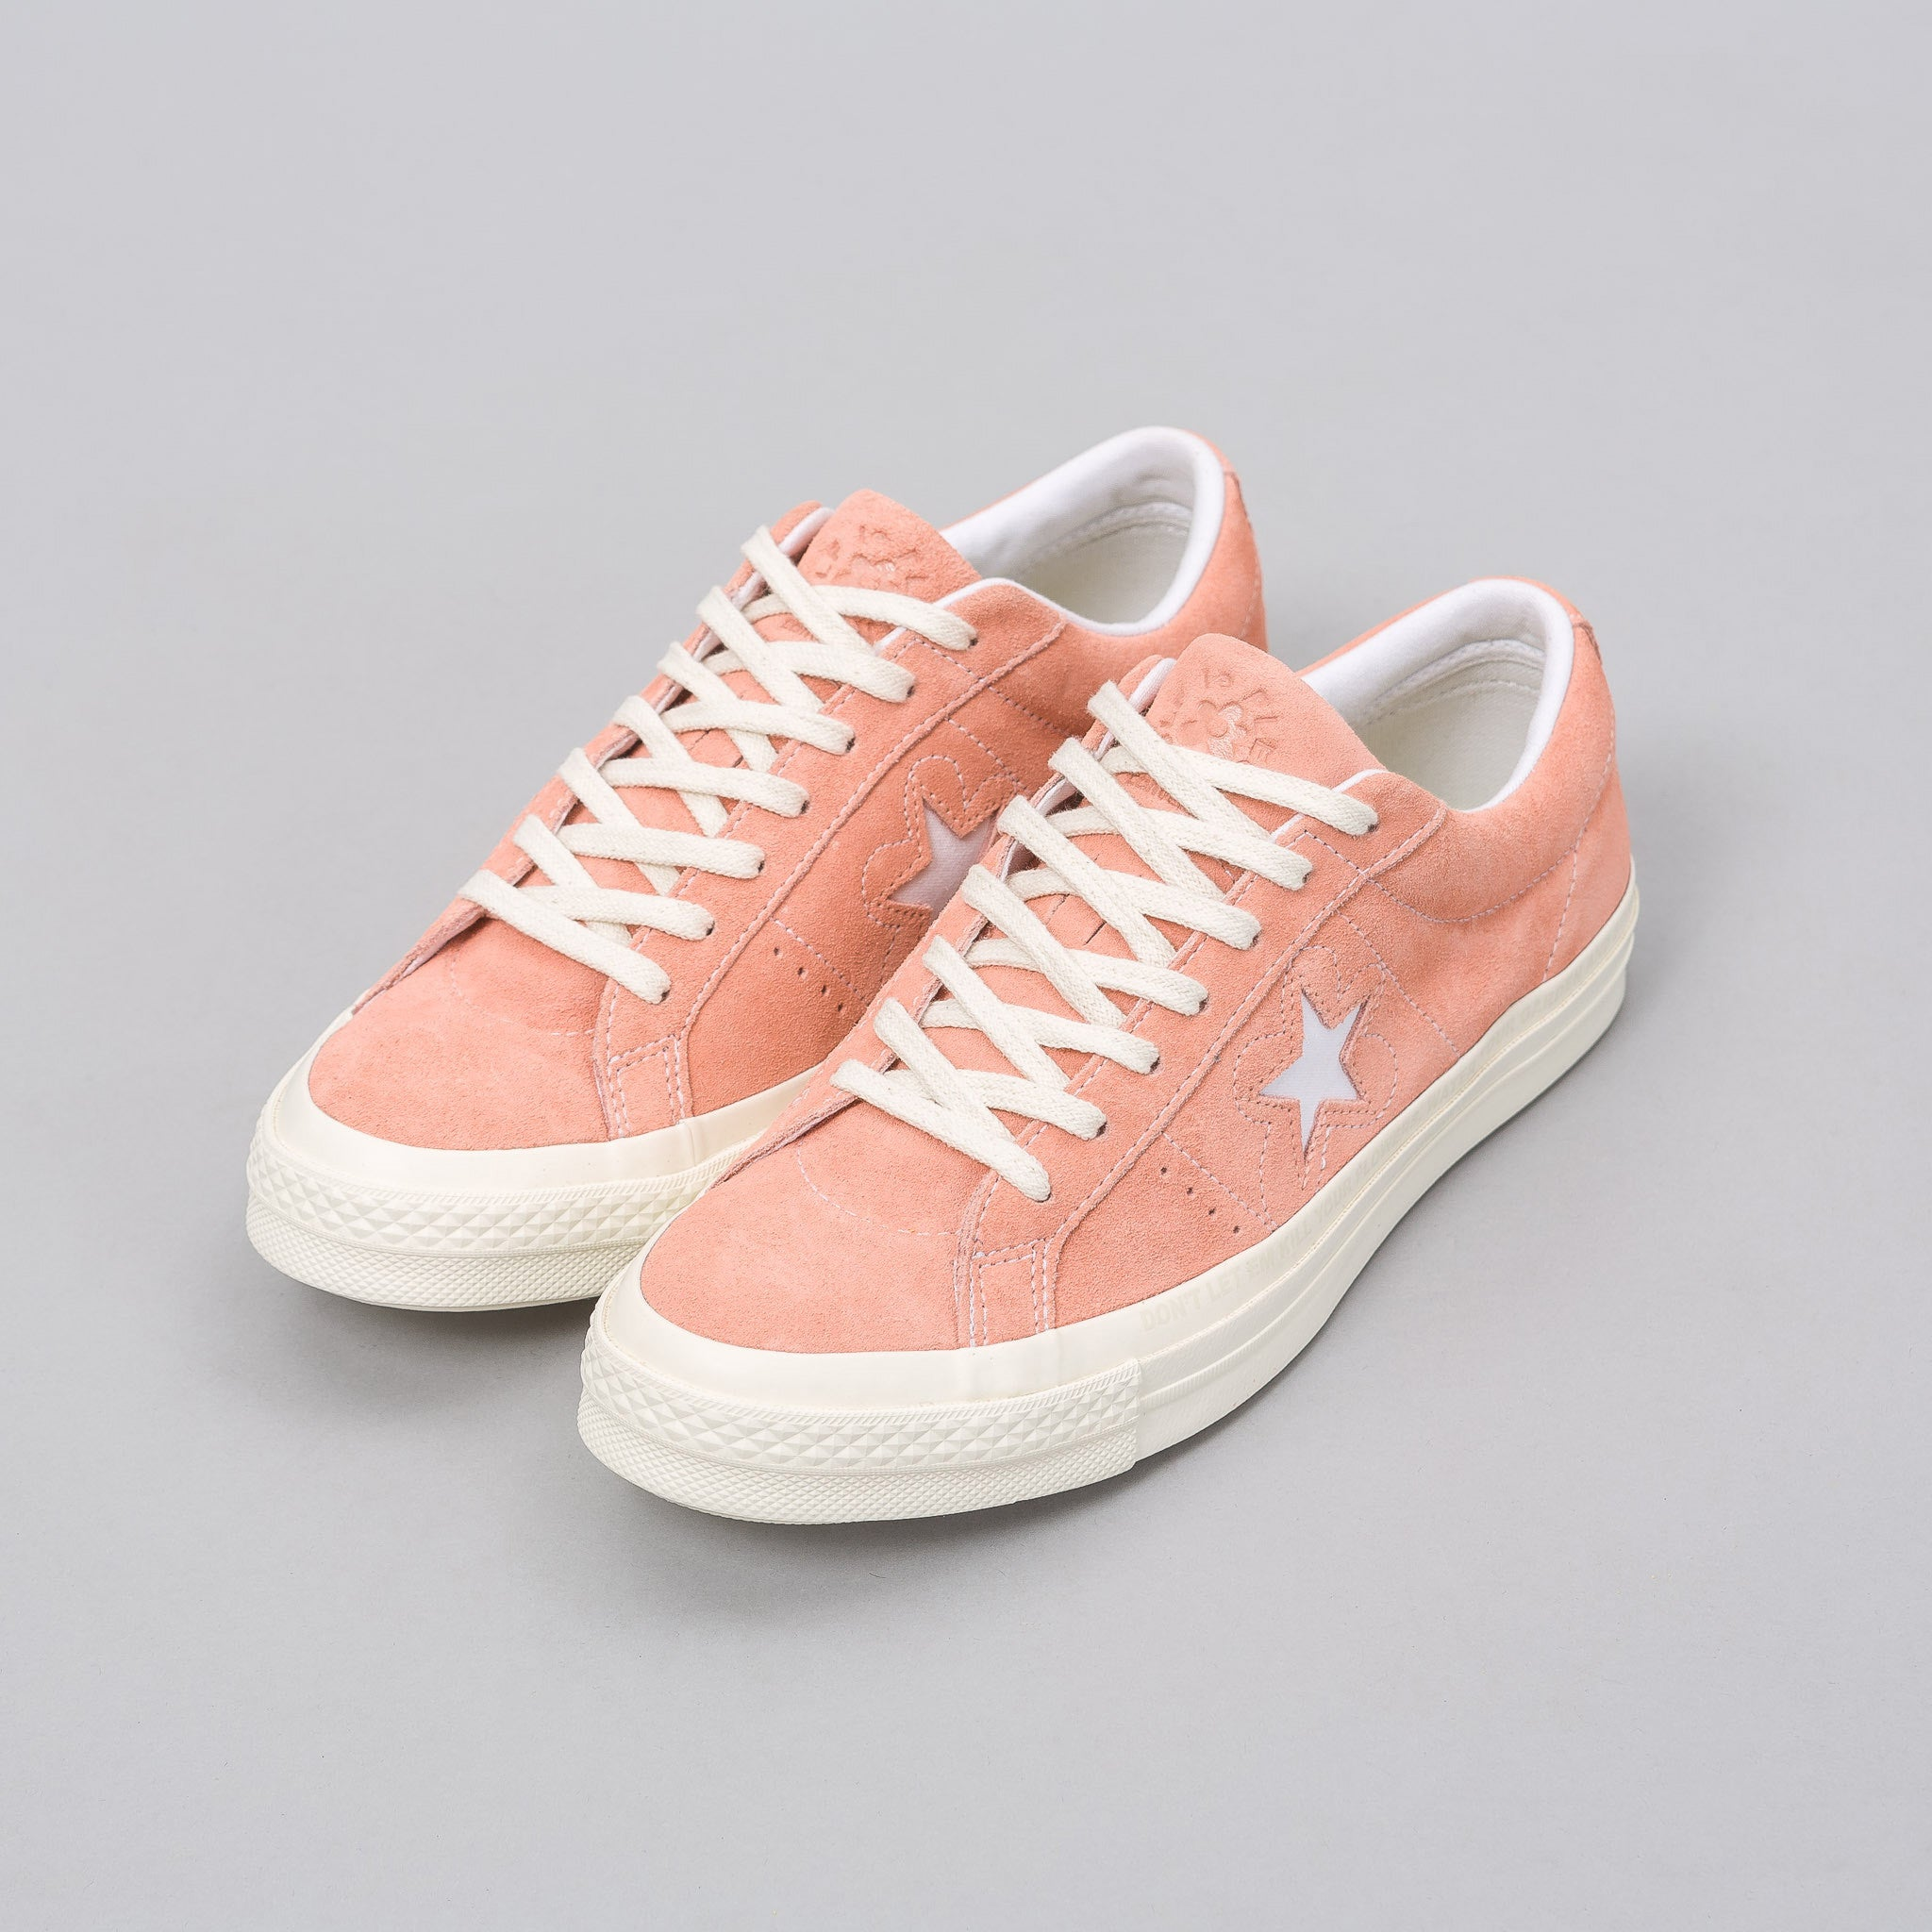 x Golf le Fleur One Star Ox in Peach Pearl